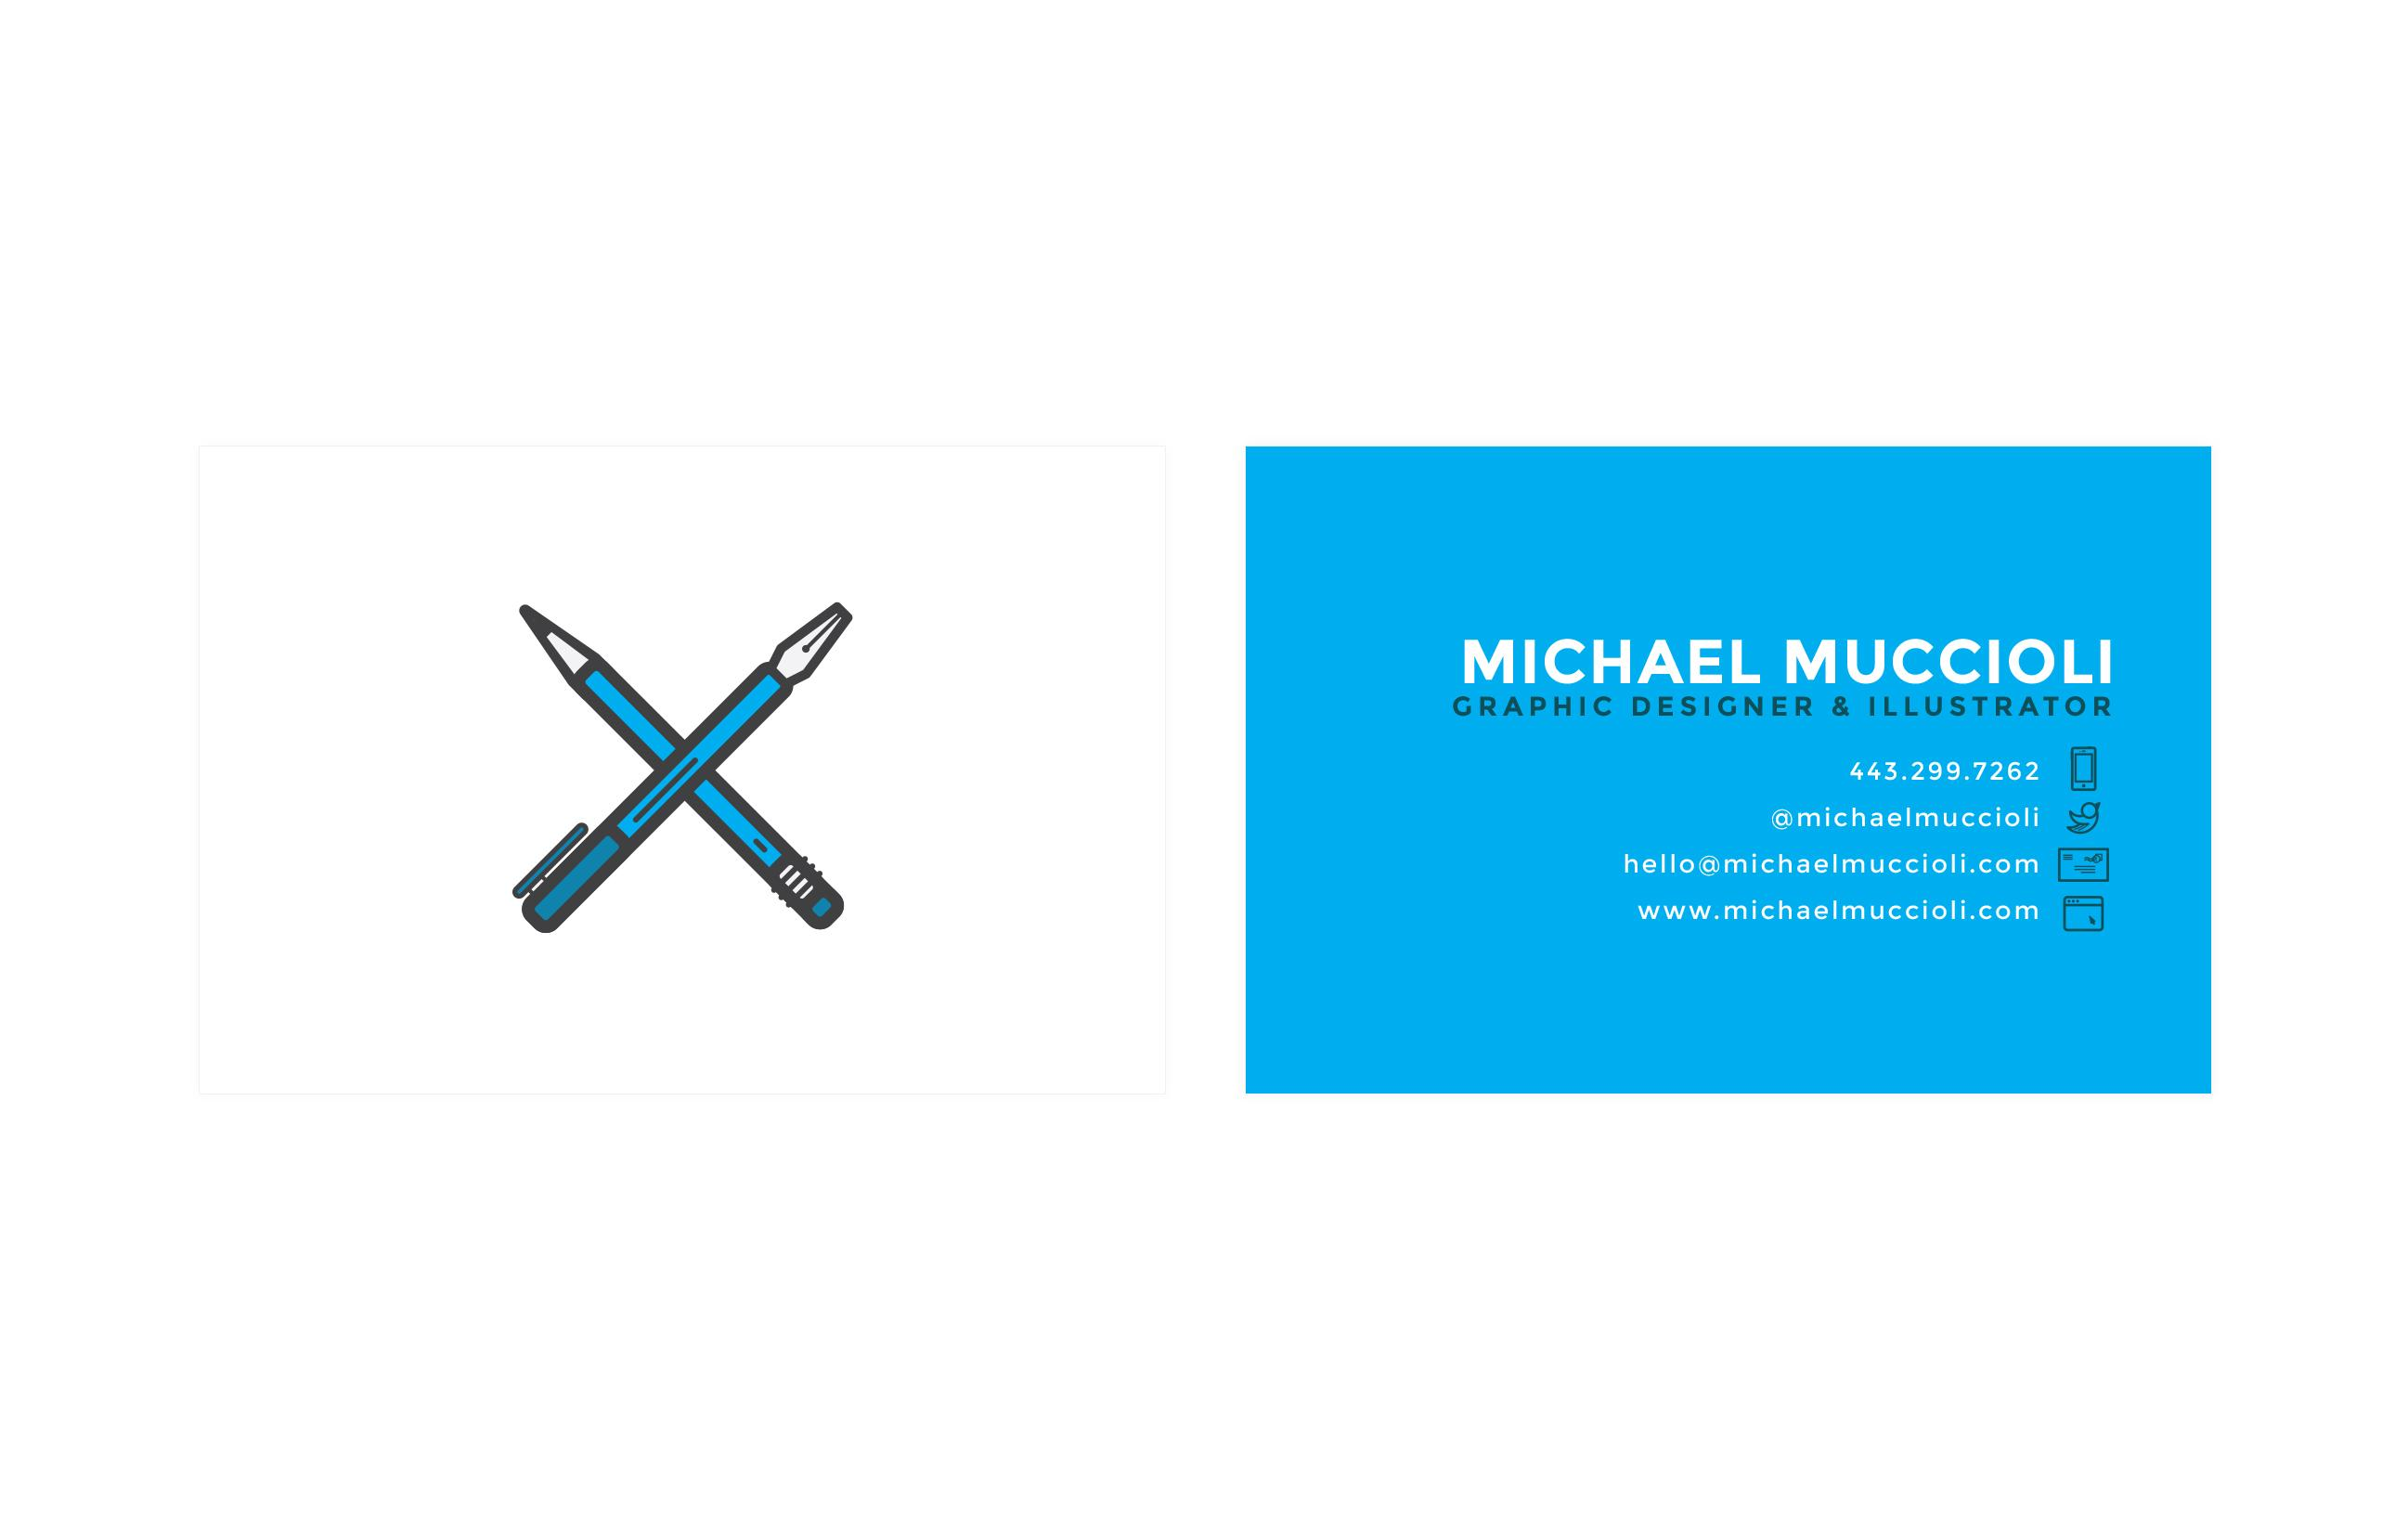 Freelance Business Card - image 7 - student project